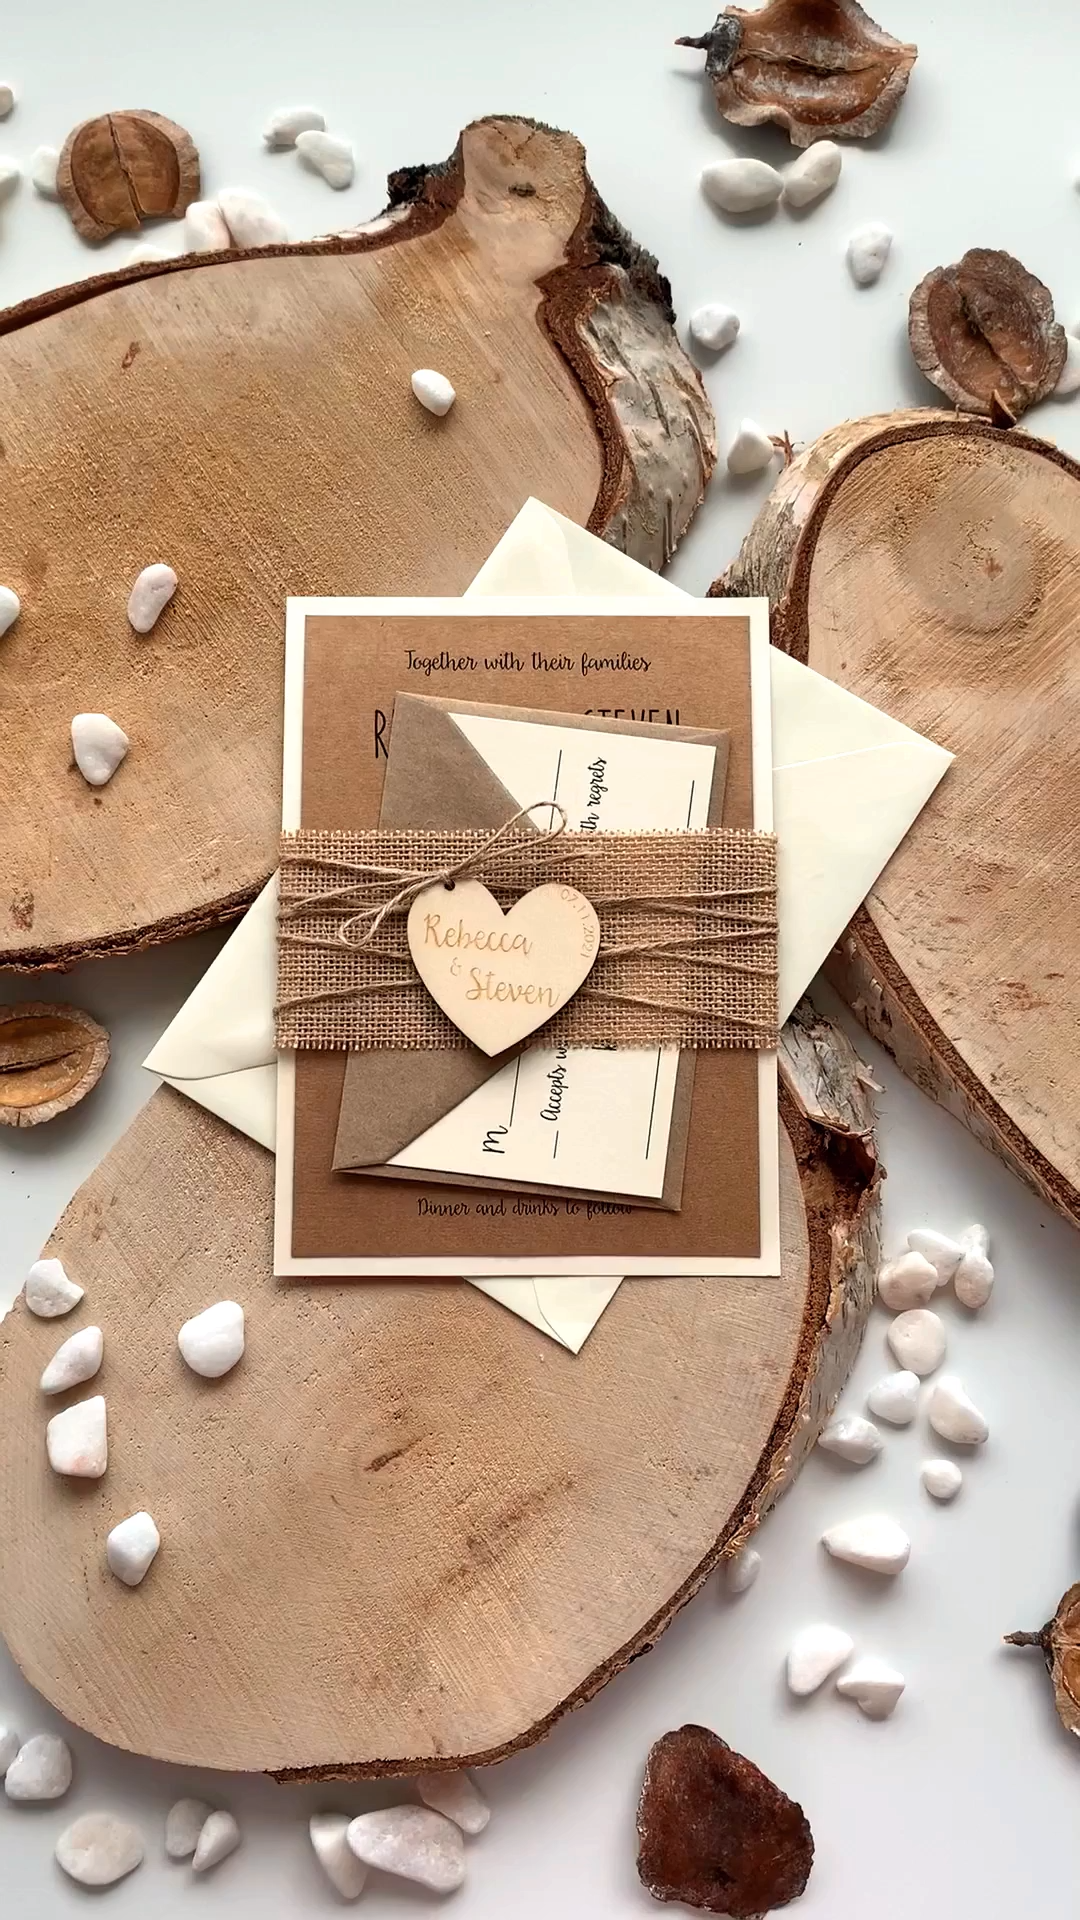 Rustic Wedding Invitation With Wood Heart inspired by rustic and country weddings. The addition of the paper contrast color and natural burlap and personalized heart on the belly band turns this invitation merely perfect. #custominvitation #weddinginvites #rusticweddinginvitations #woodenweddinginvitations #wedoweddinginvitations #countryweddinginvitations #lasercutweddinginvitations #personalizedweddinginvitations #rusticweddingideas #rusticweddinginvites